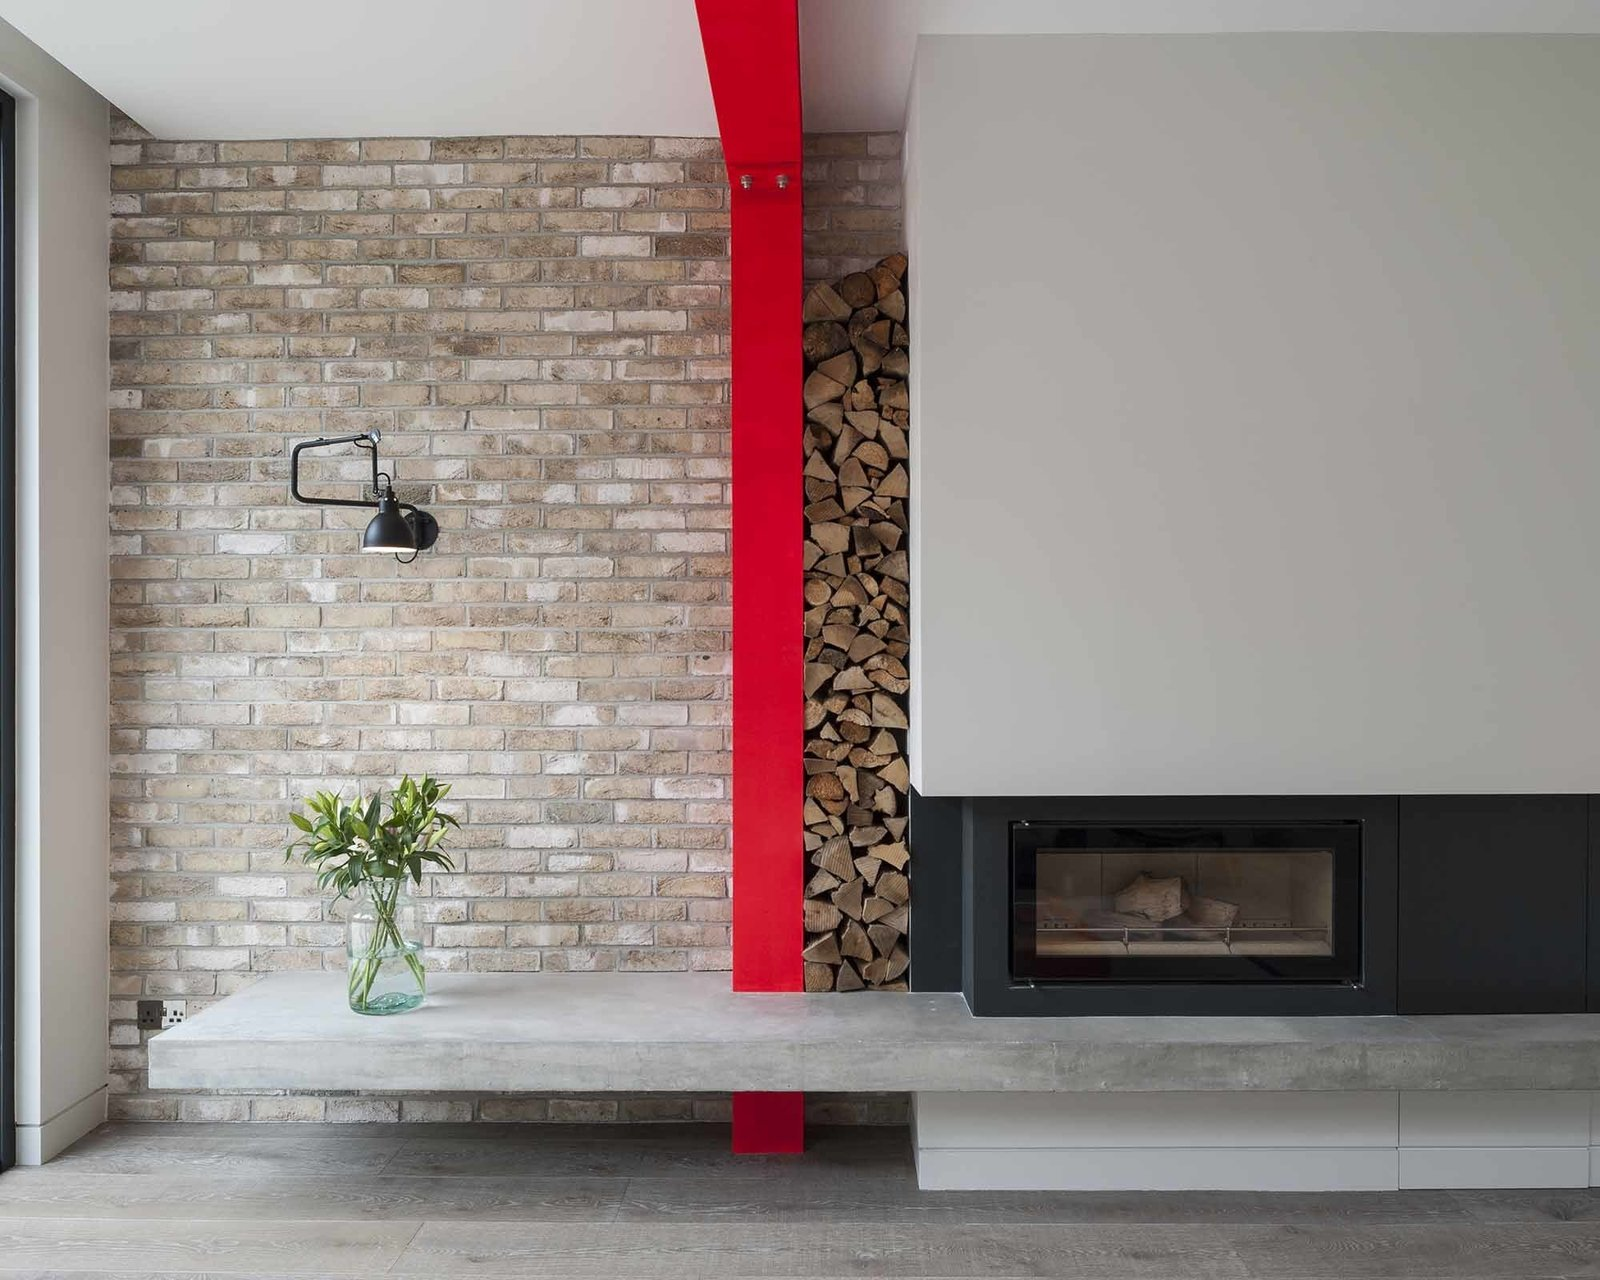 The overhanging concrete plinth acts as a hearth or, as Tigg imagines it, a sort of contemporary inglenook. Wood piles neatly between the beam and wall. The fireplace, a Stovax Riva 2, is flanked by a Lampe Gras wall lamp.  97+ Modern Fireplace Ideas from A London Town House Renovation Beaming with Personality